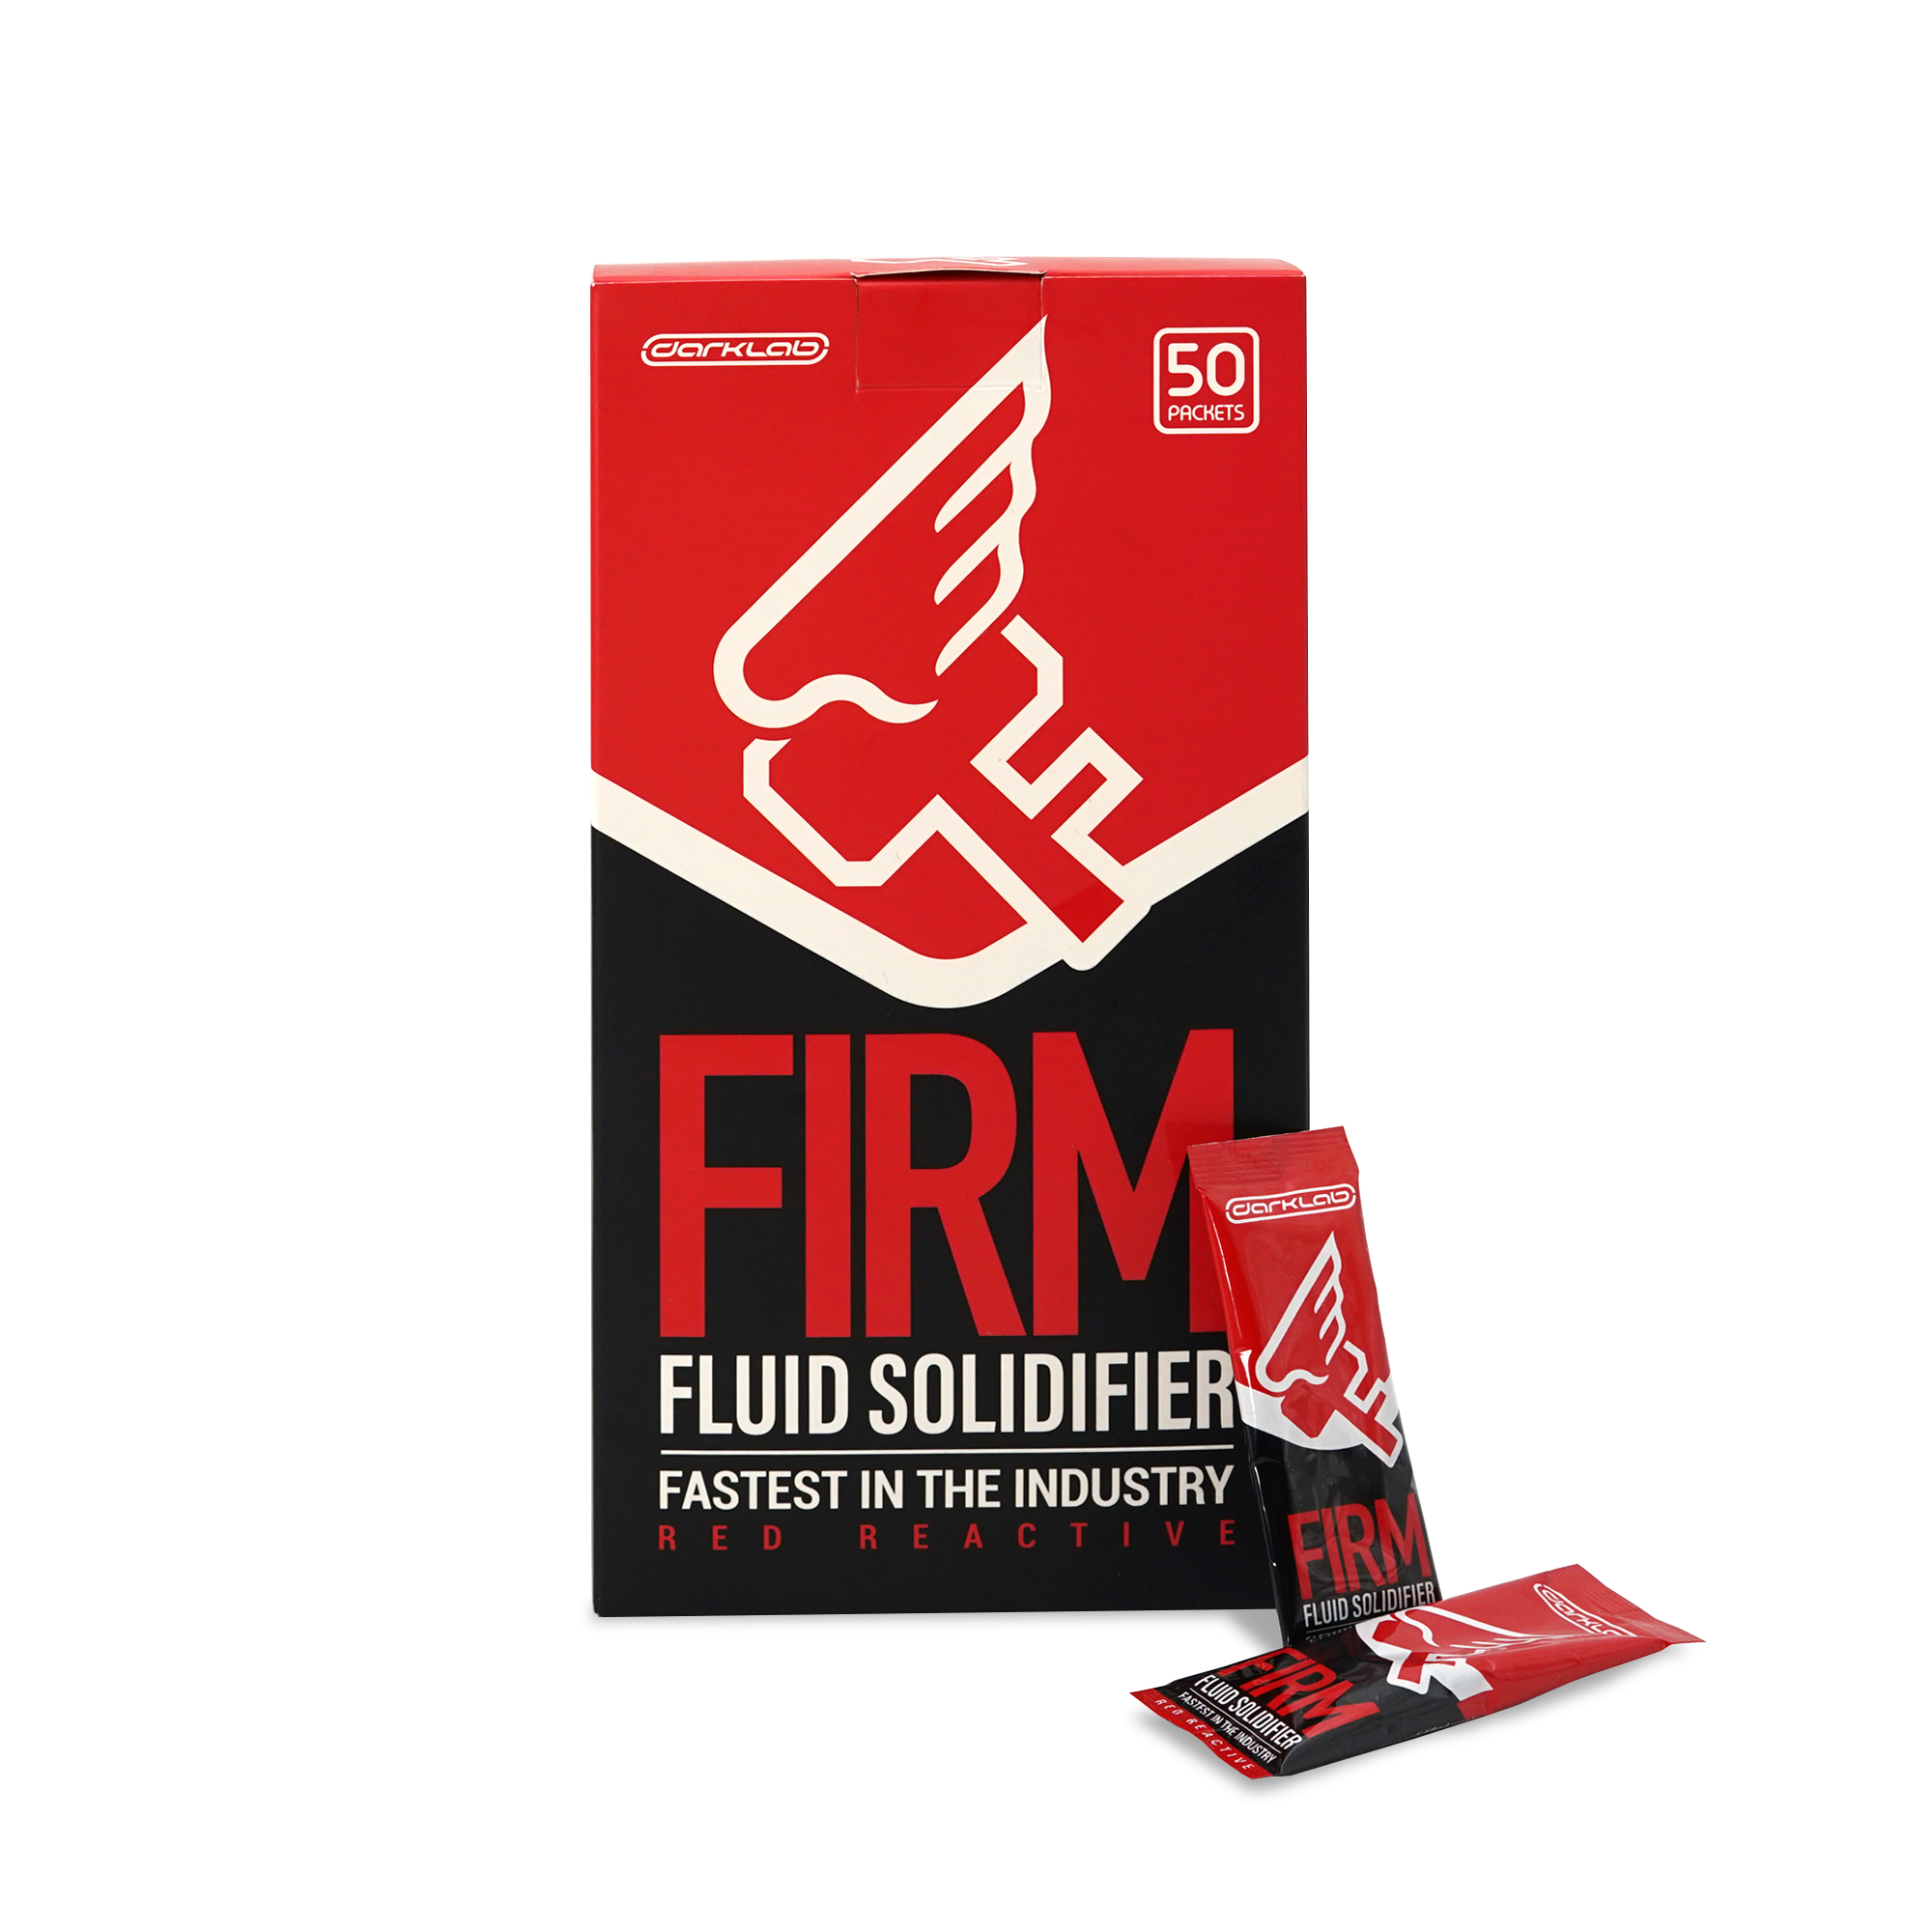 FIRM FLUID SOLIDIFIER 50 PACK BOX (RED)